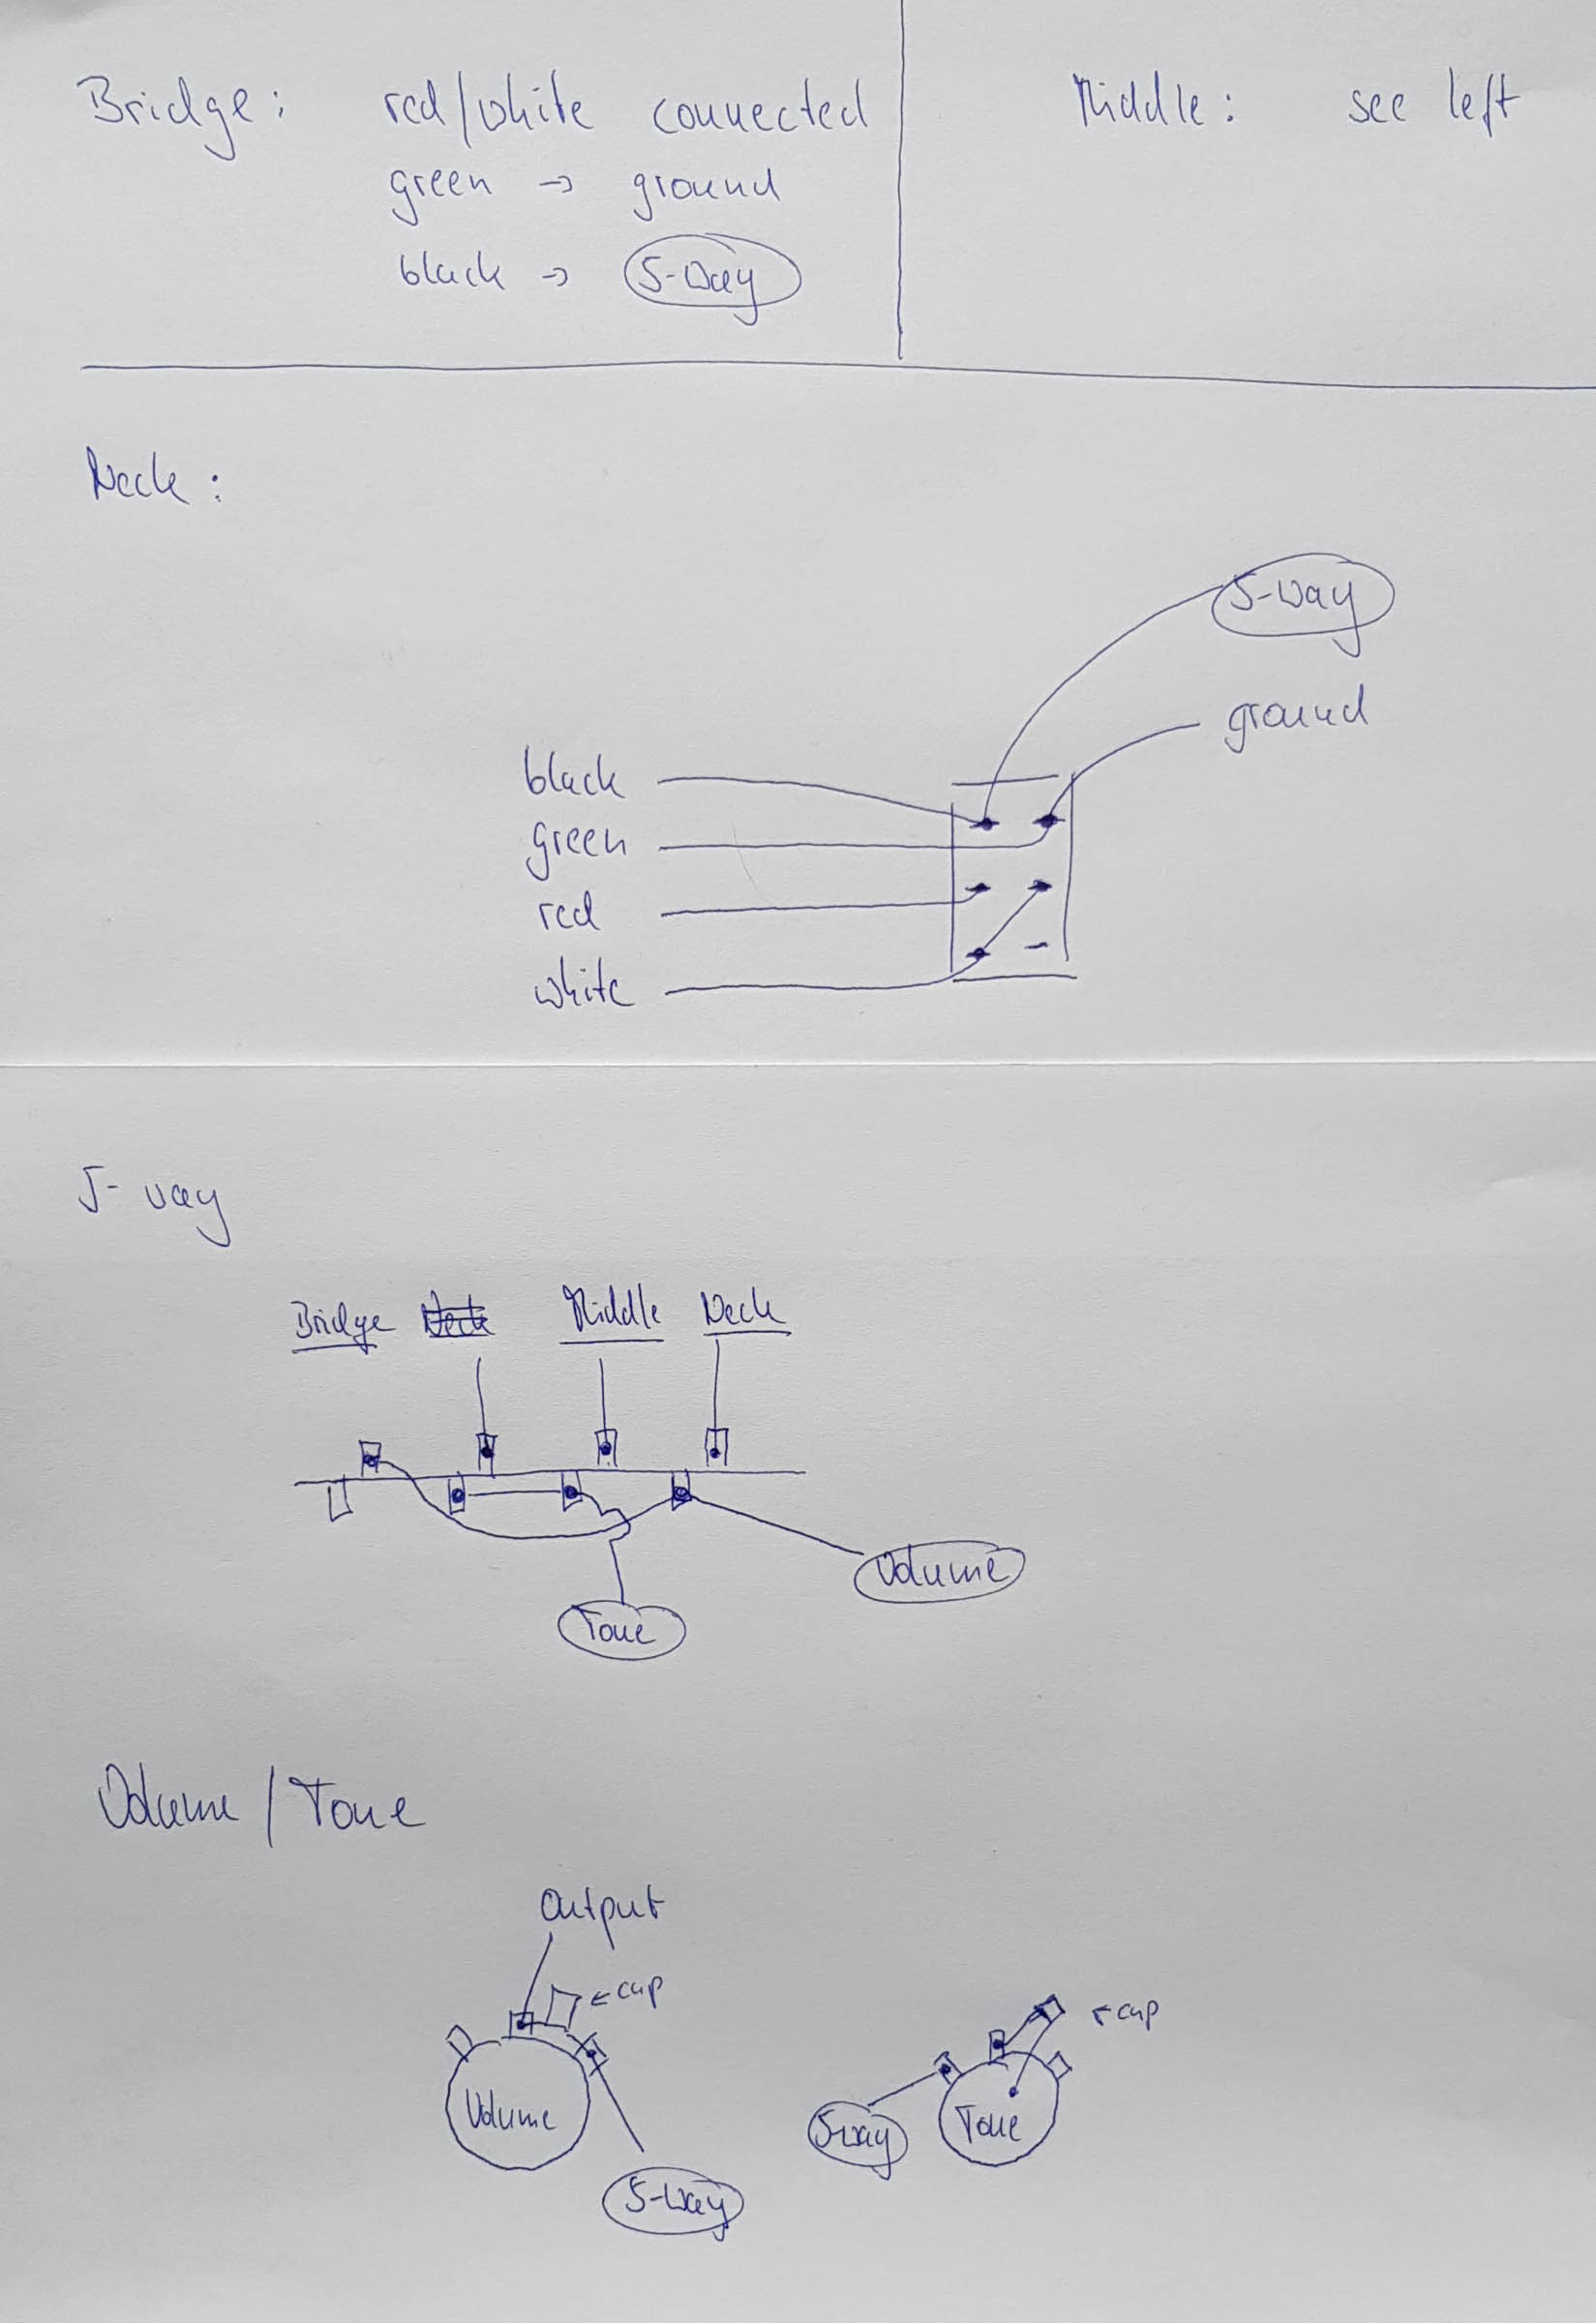 Gtr 037 Kramer Proaxe Deluxe Dingens2k Strat Wiring Diagram No Tone The Layout Does Correspond With How Controls Work Normal 5 Way Setup Control For Bridge Pickup And 3 Switch Only Neck